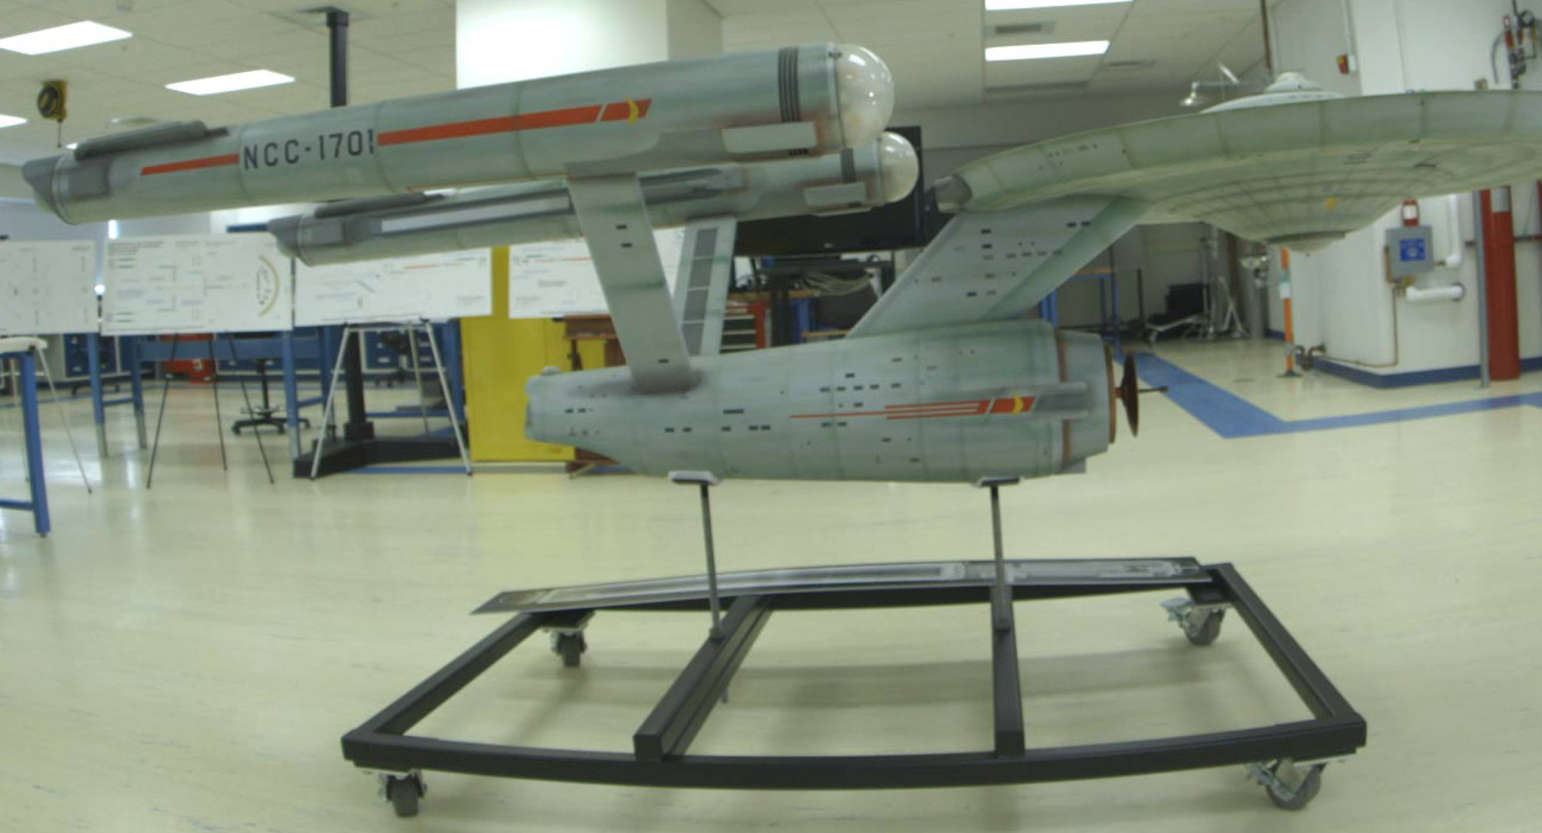 'Building Star Trek' Documentary Shows Efforts to Save Original Enterprise Model